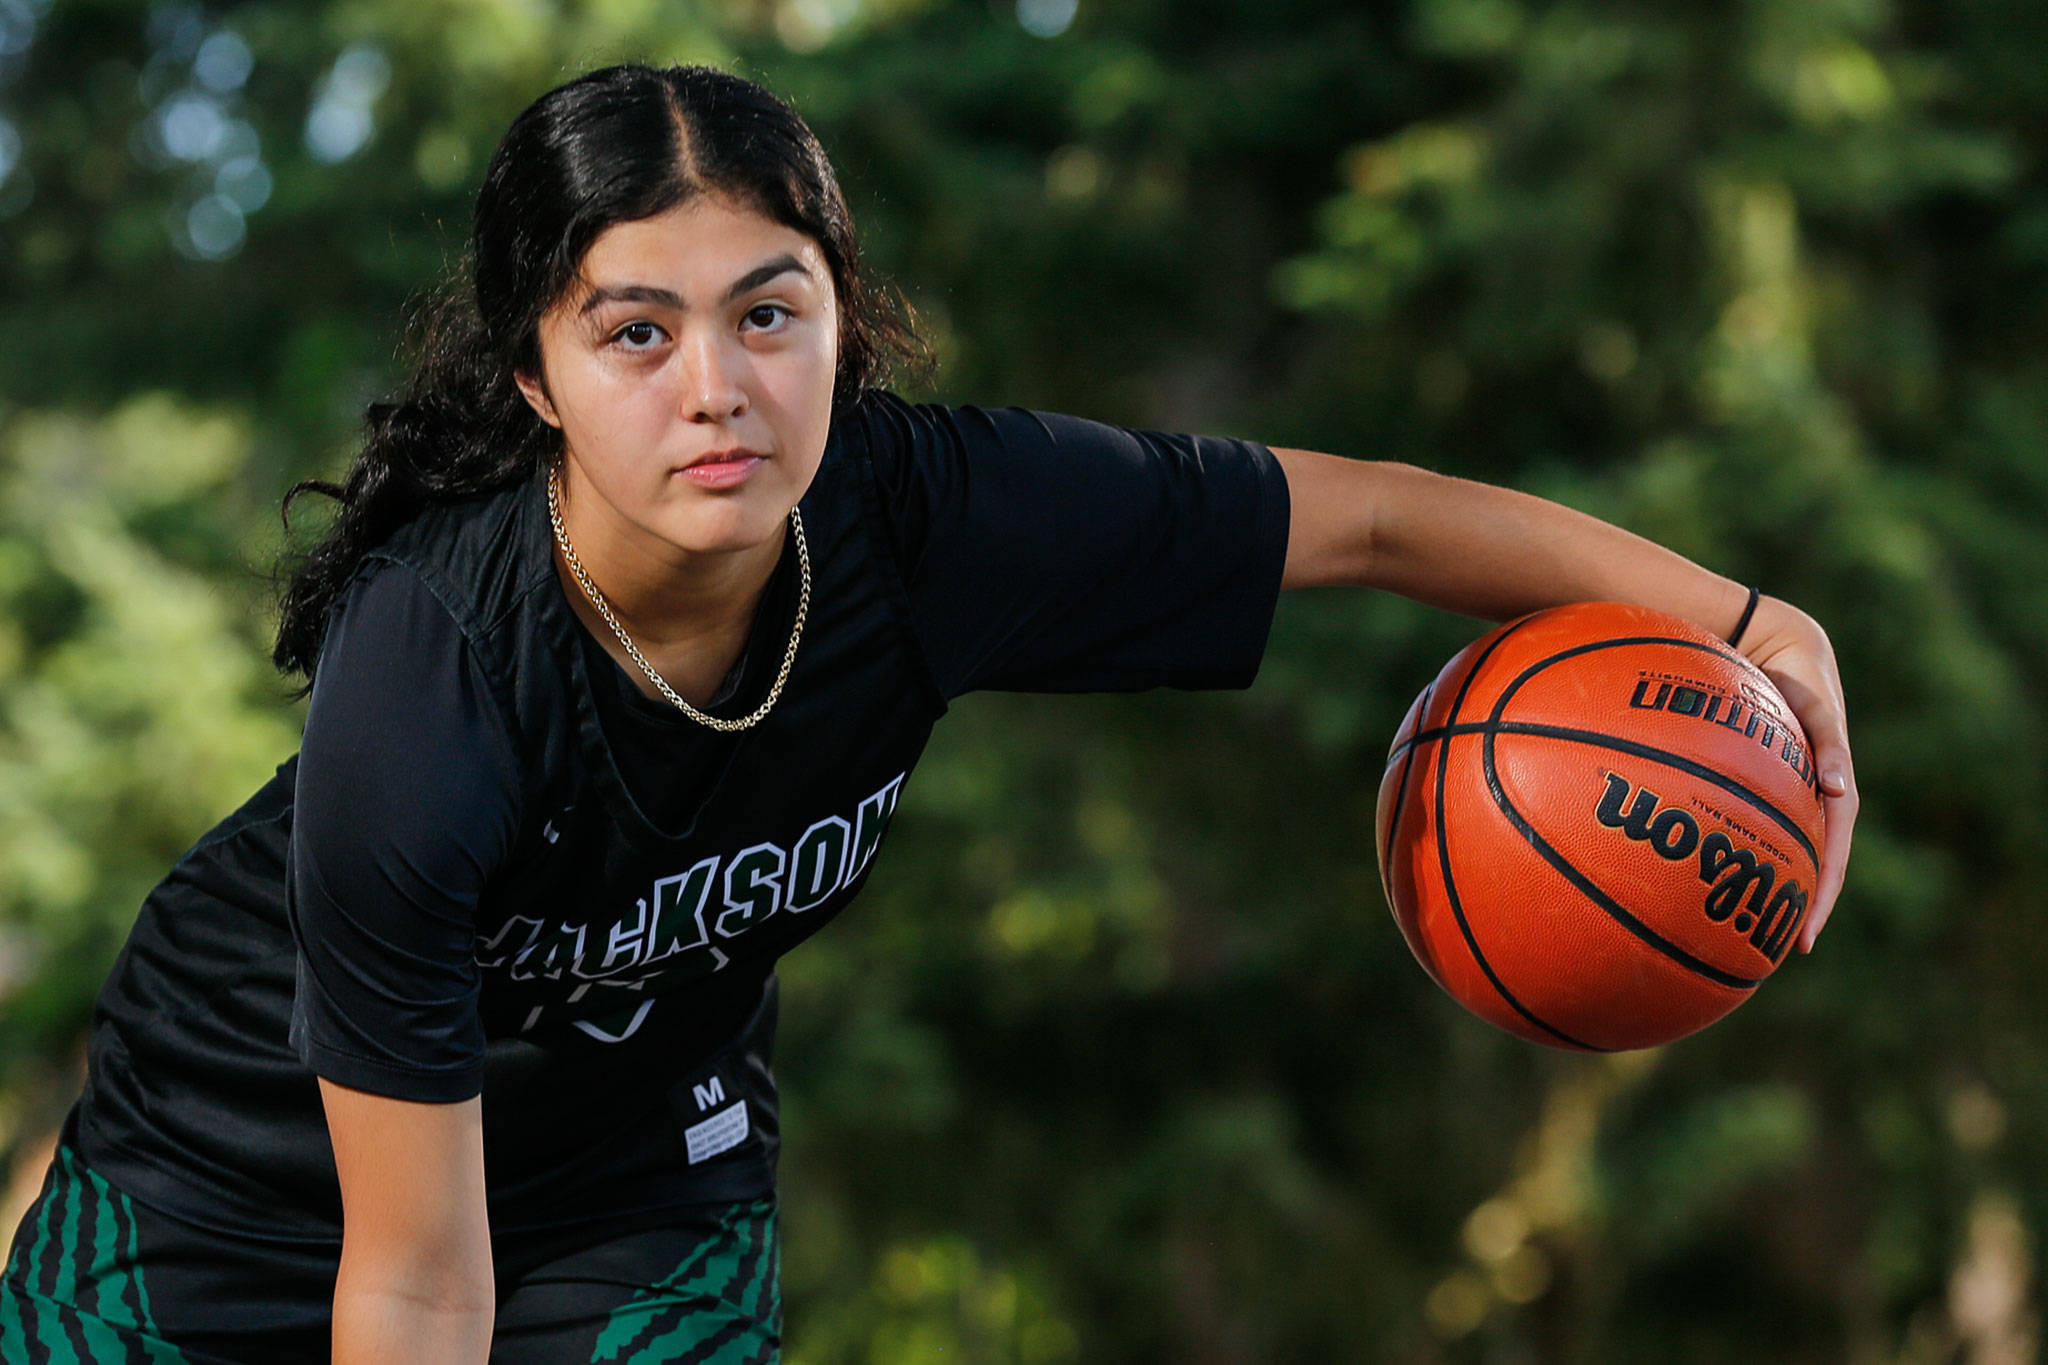 Jackson High School freshman Giselle Dogan is The Herald's Athlete of the Month for May/June. (Kevin Clark / The Herald)